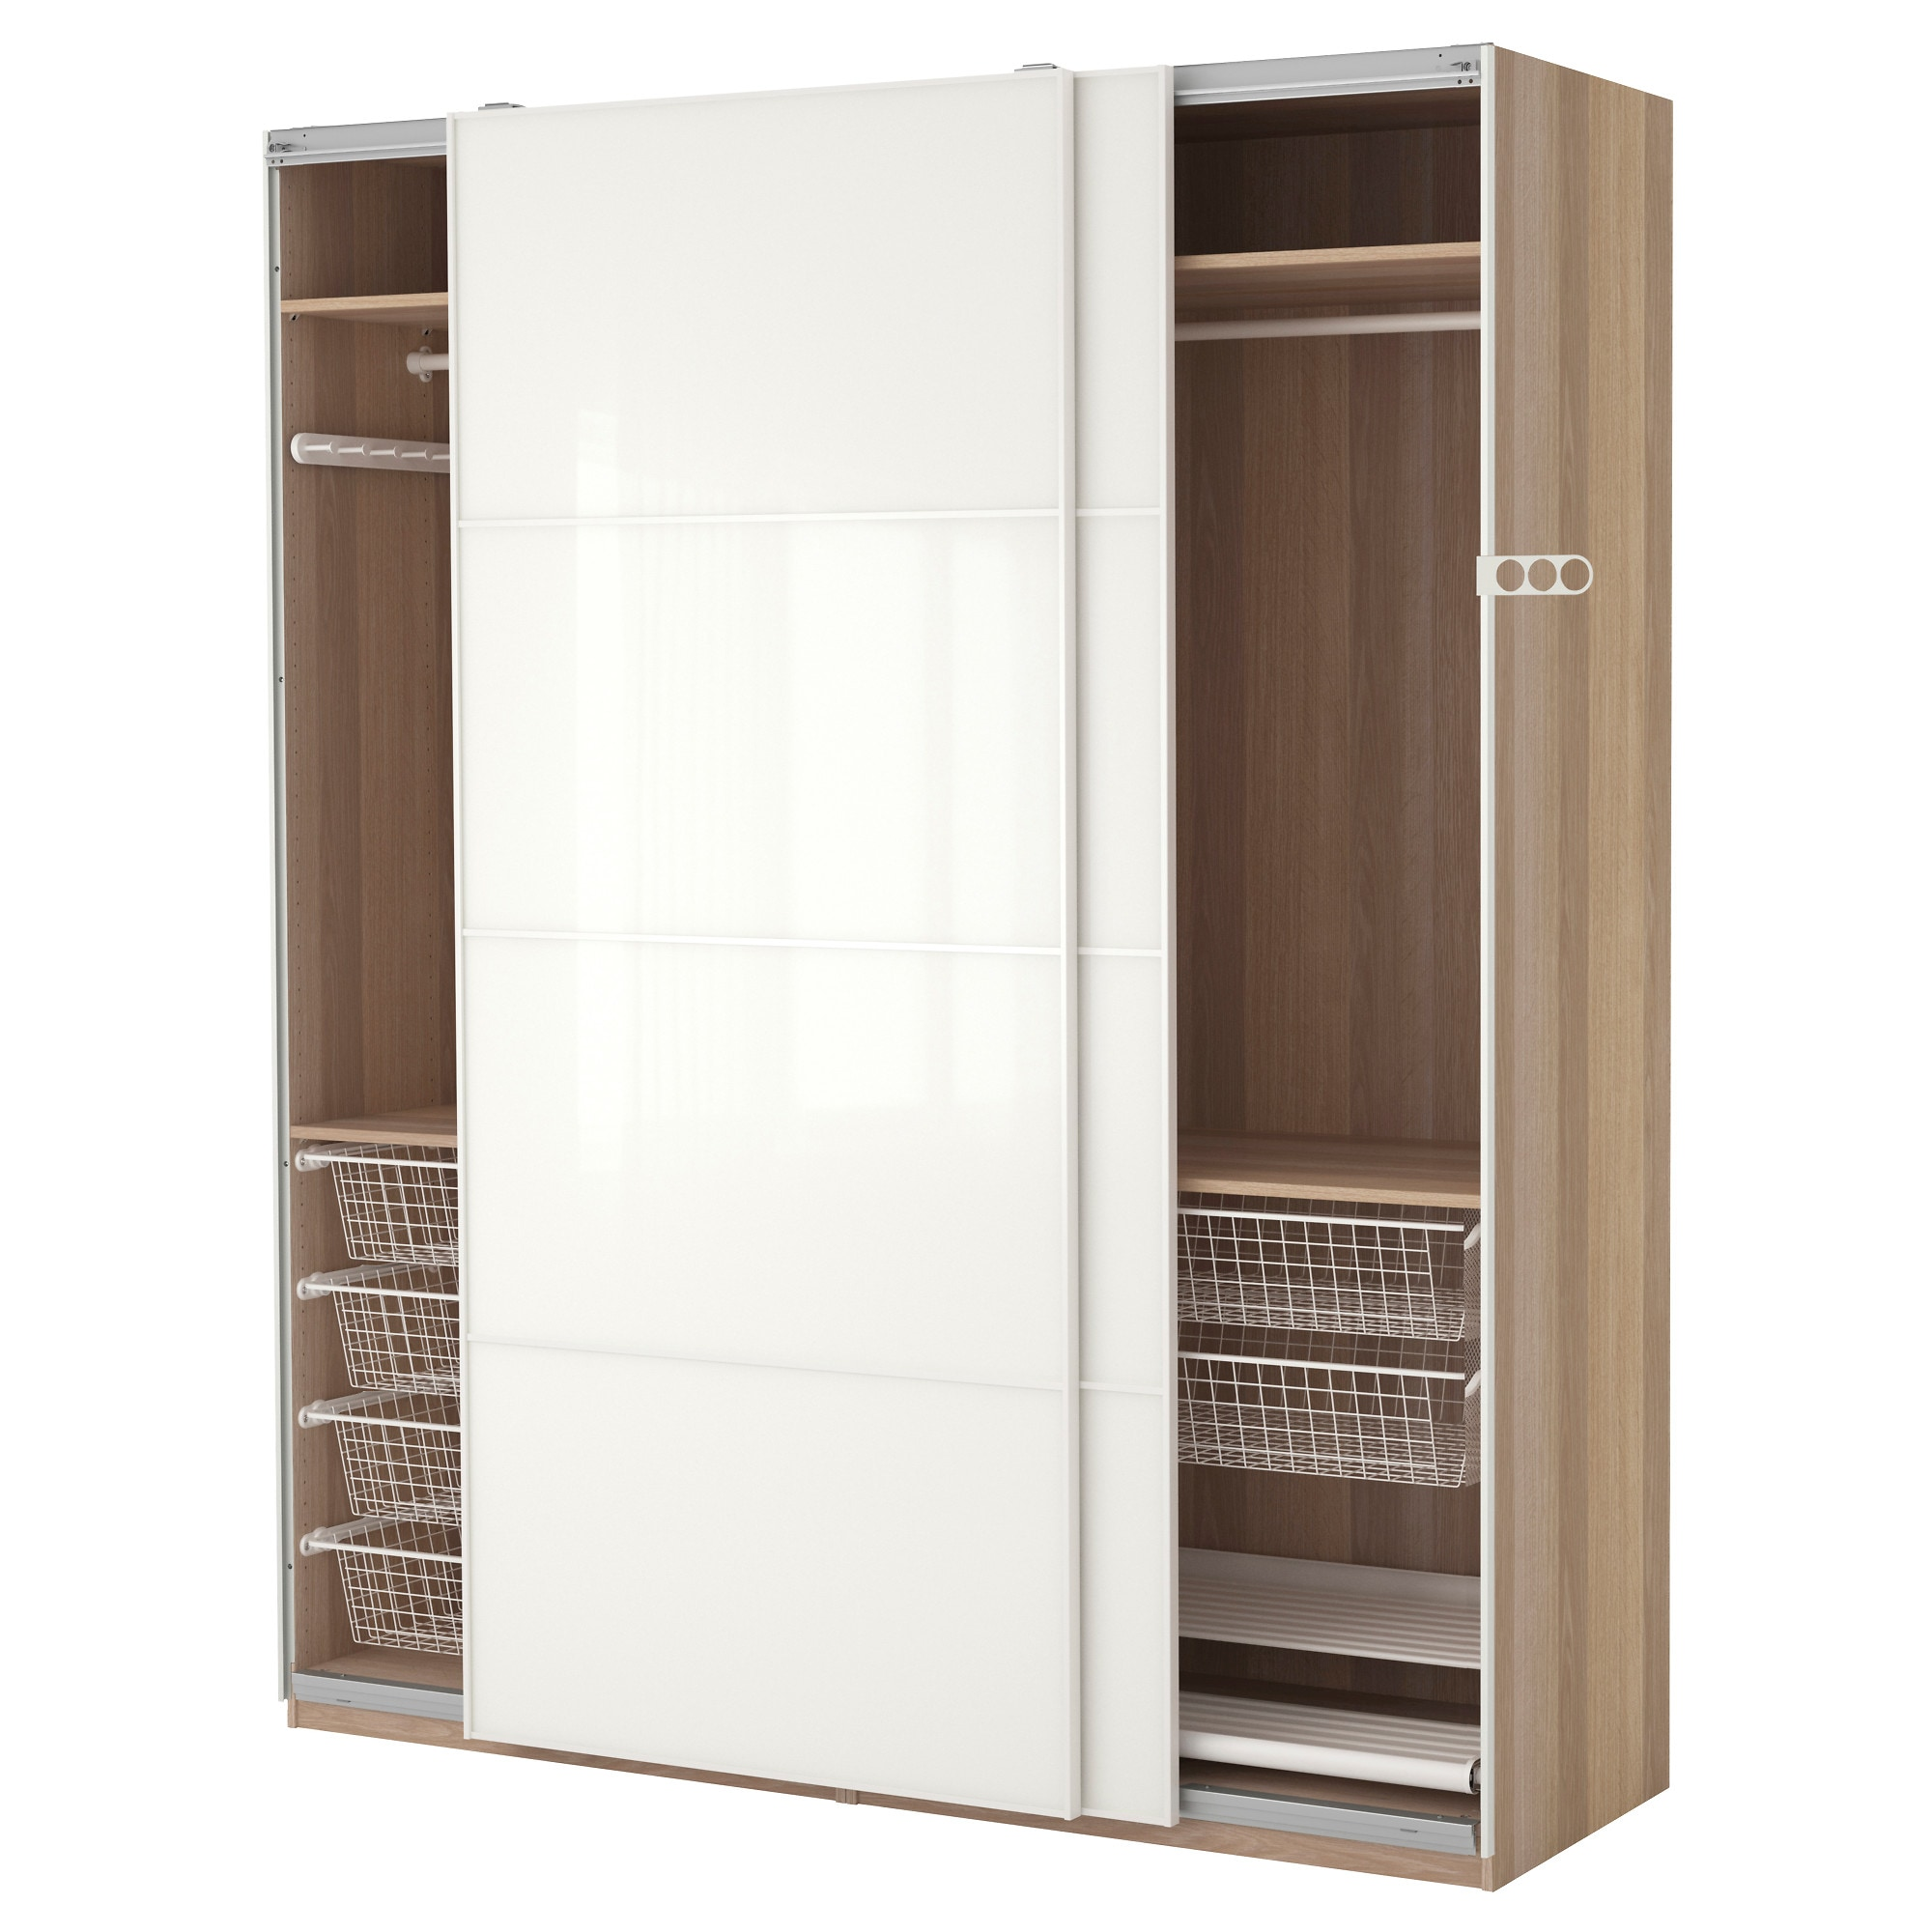 Delightful PAX Wardrobe, White Stained Oak Effect, Färvik White Glass